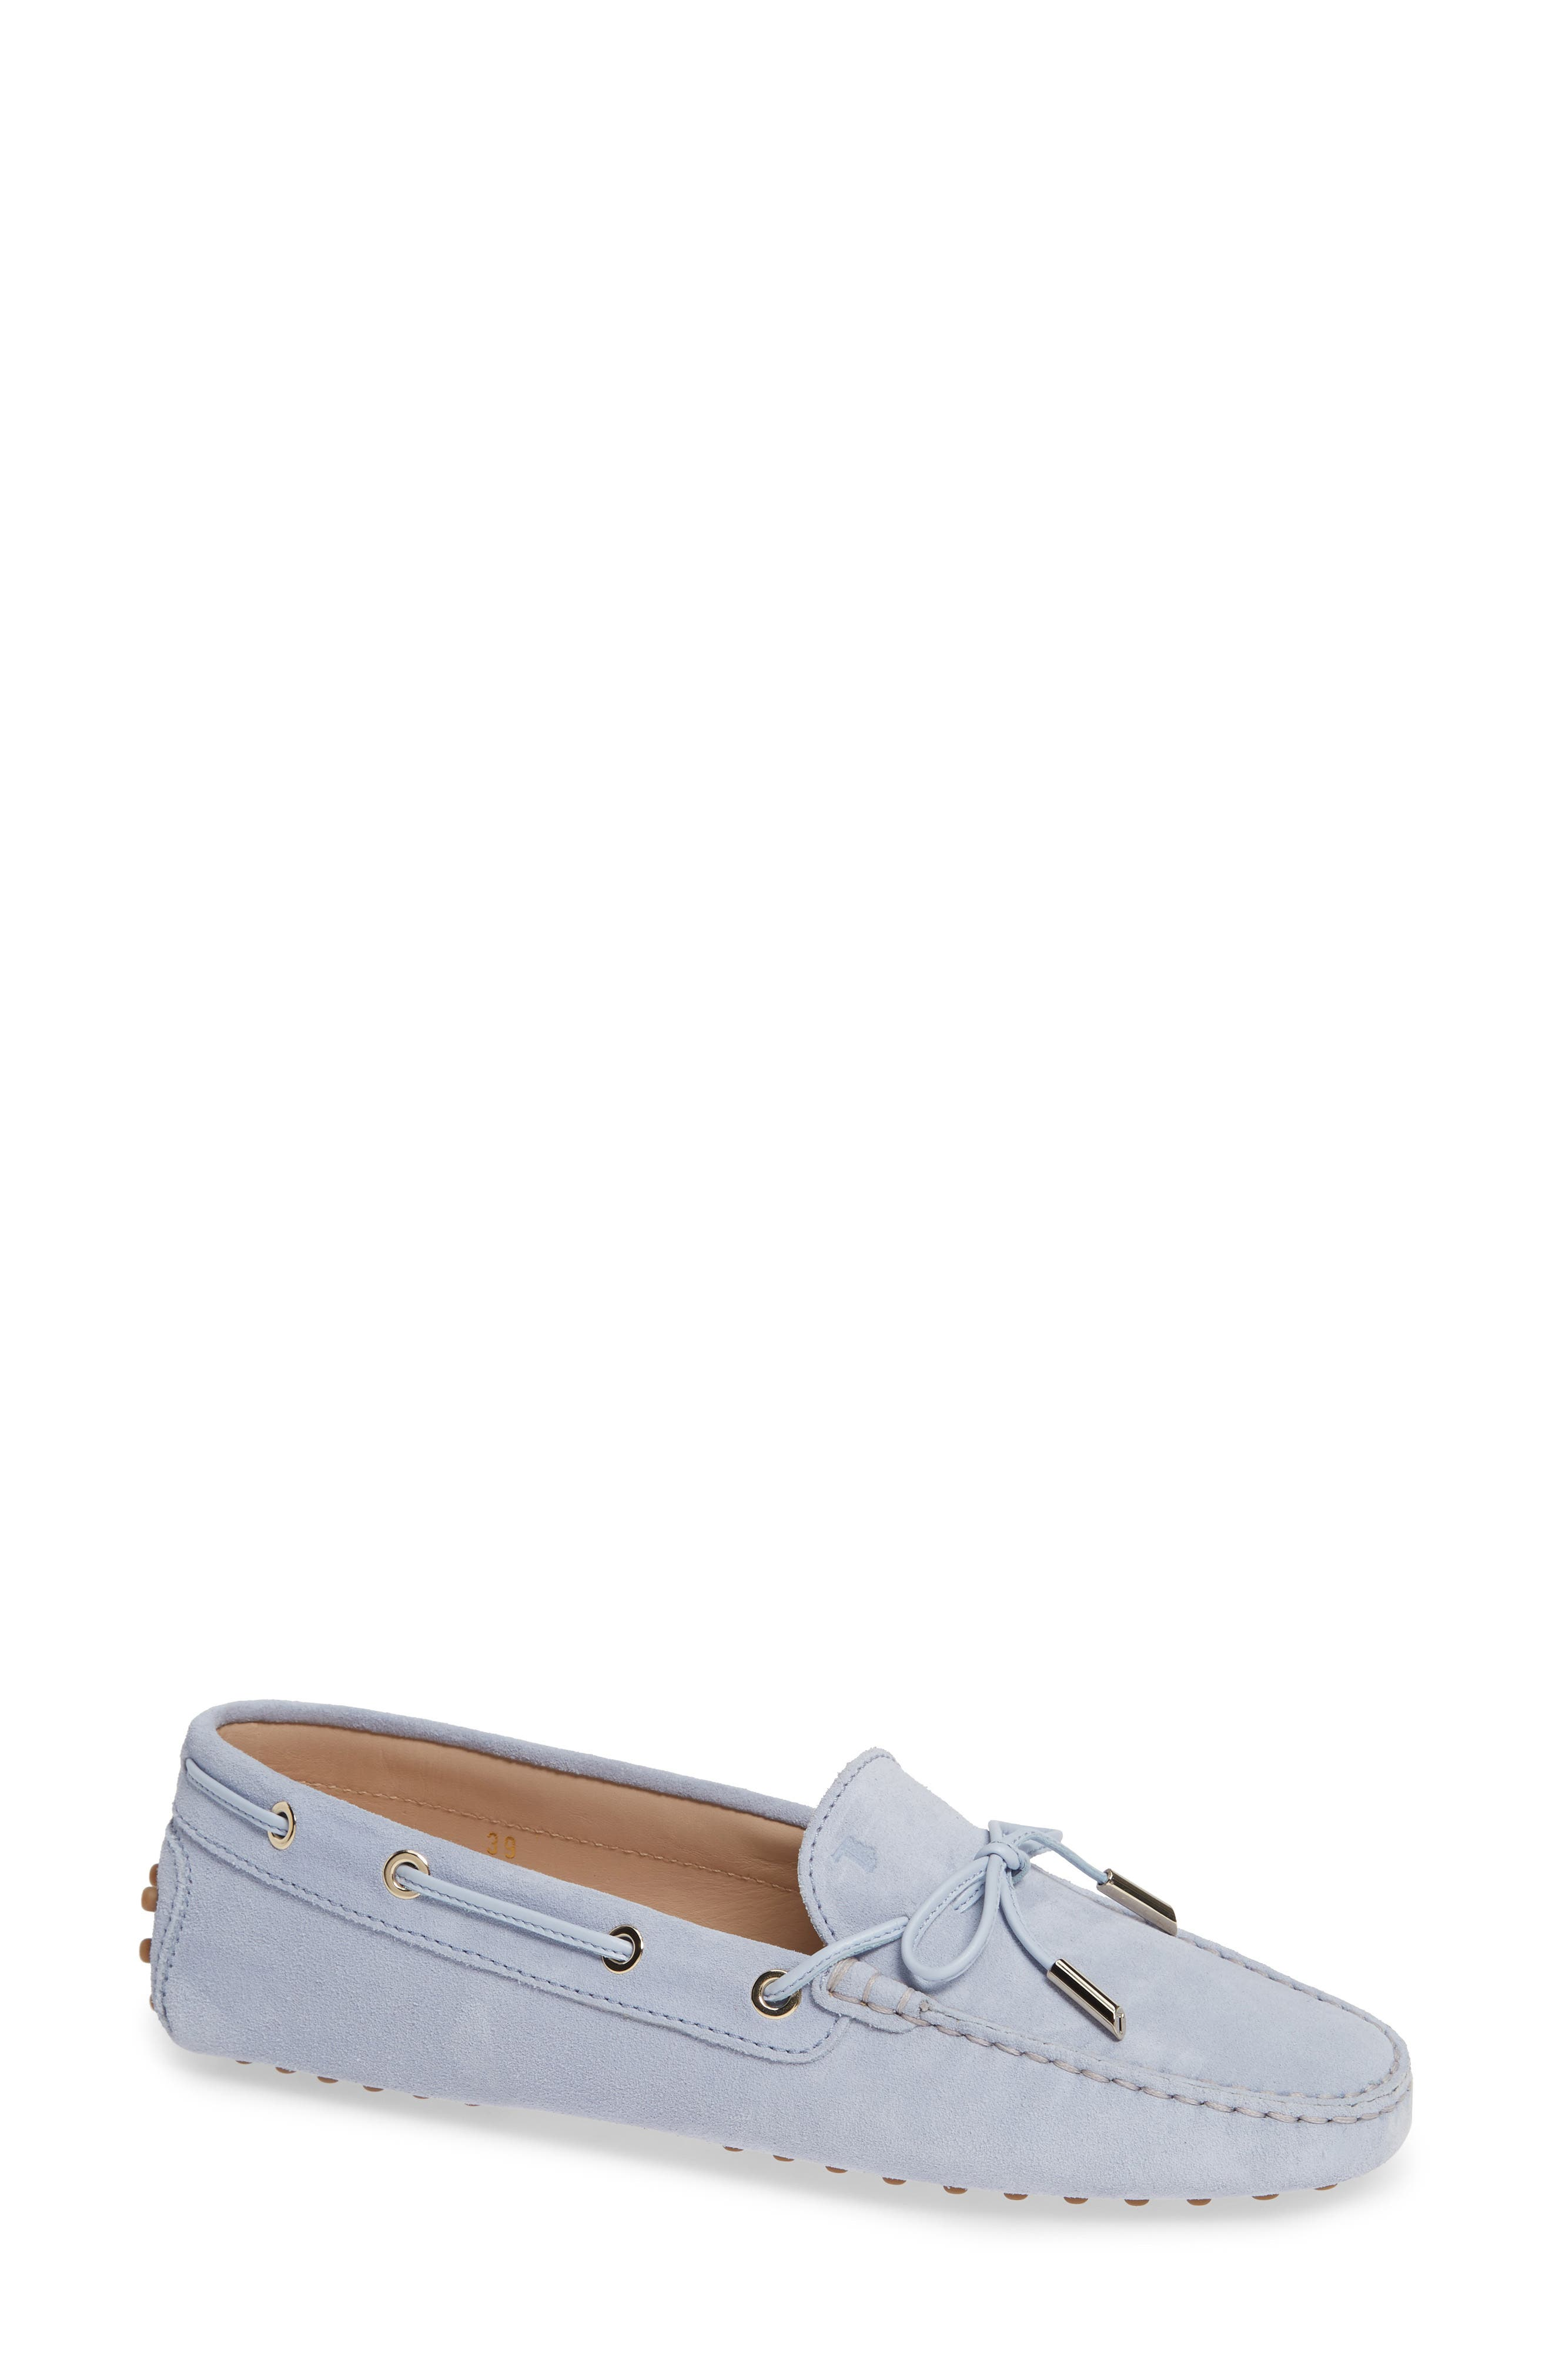 Gommini Driving Moccasin, Main, color, LILAC